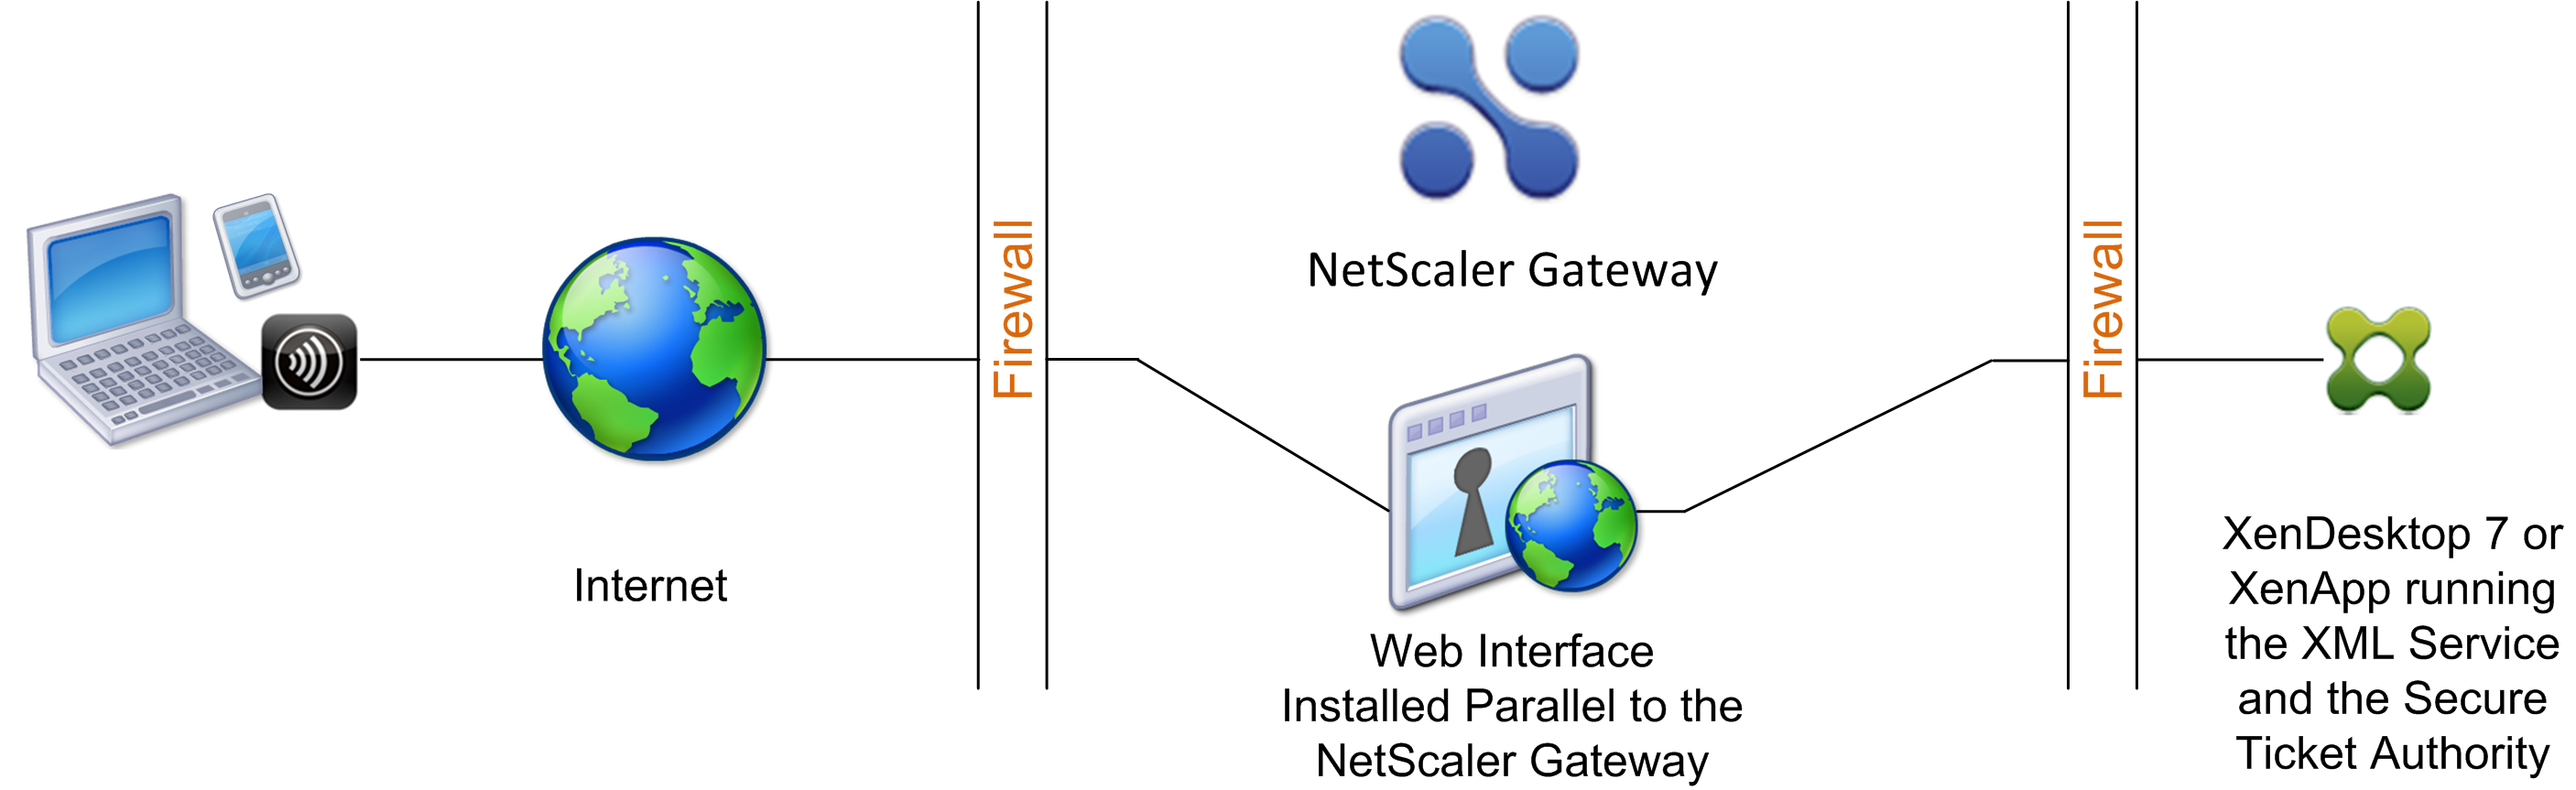 Web Interface Running Parallel to NetScaler Gateway